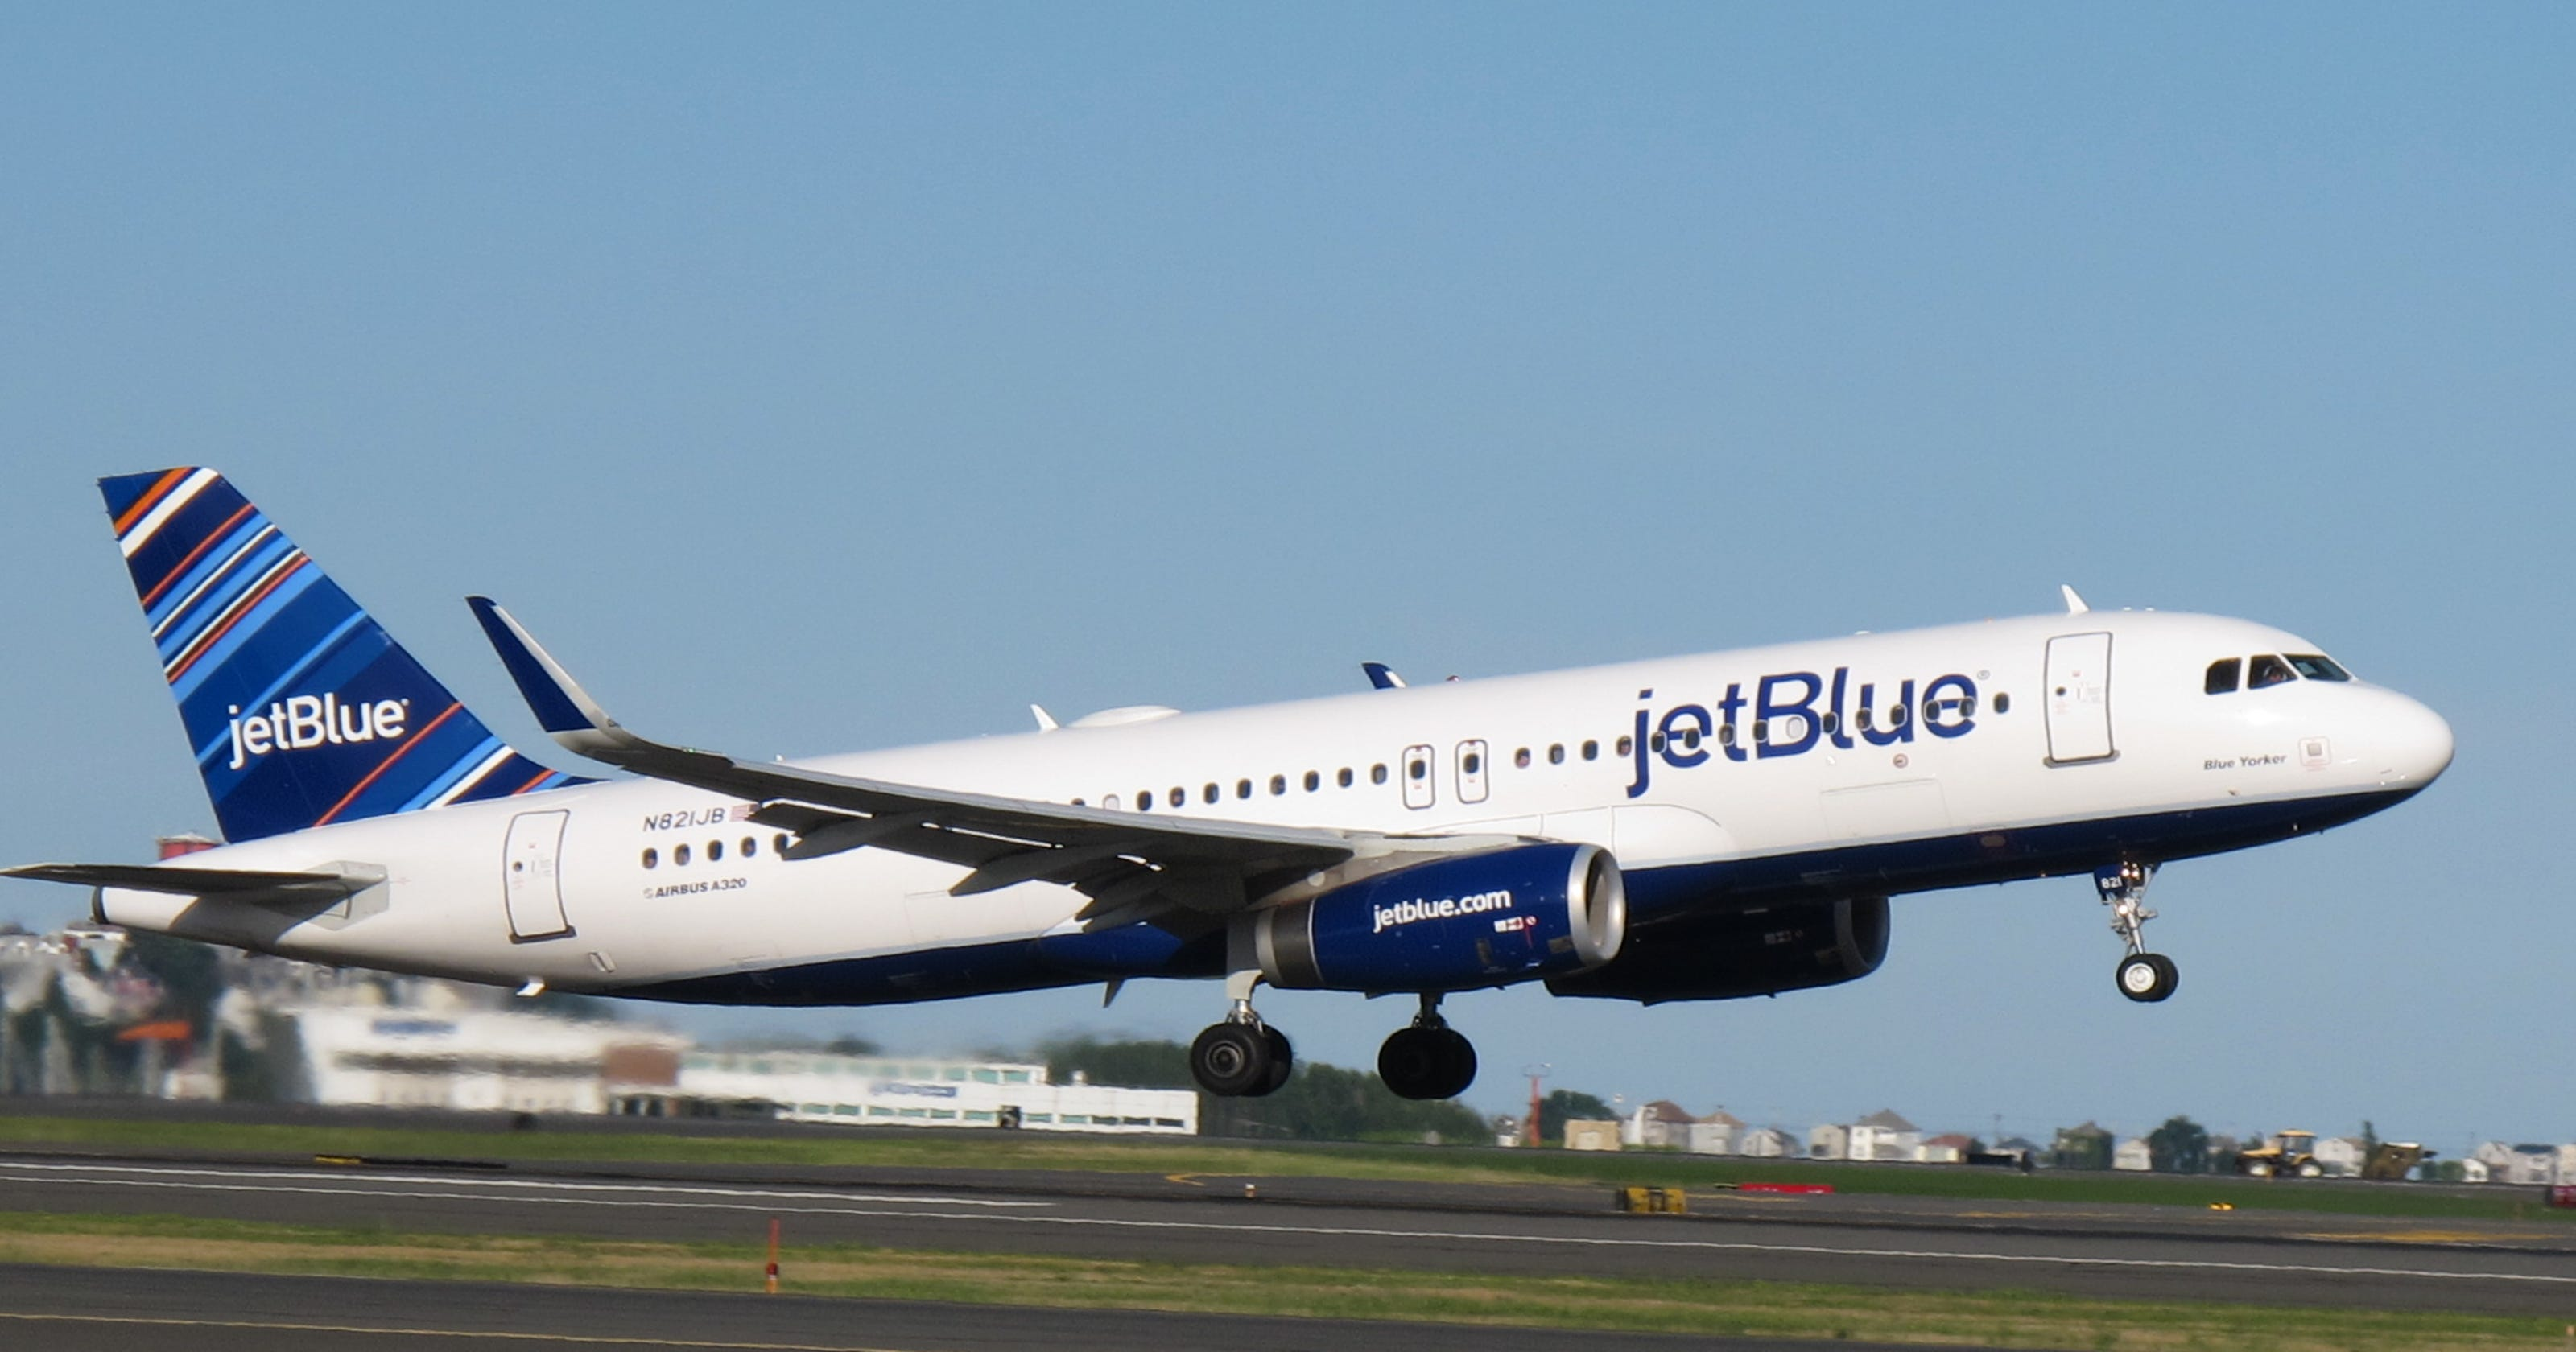 JetBlue lawsuit claims pilots drugged three crew members and raped two